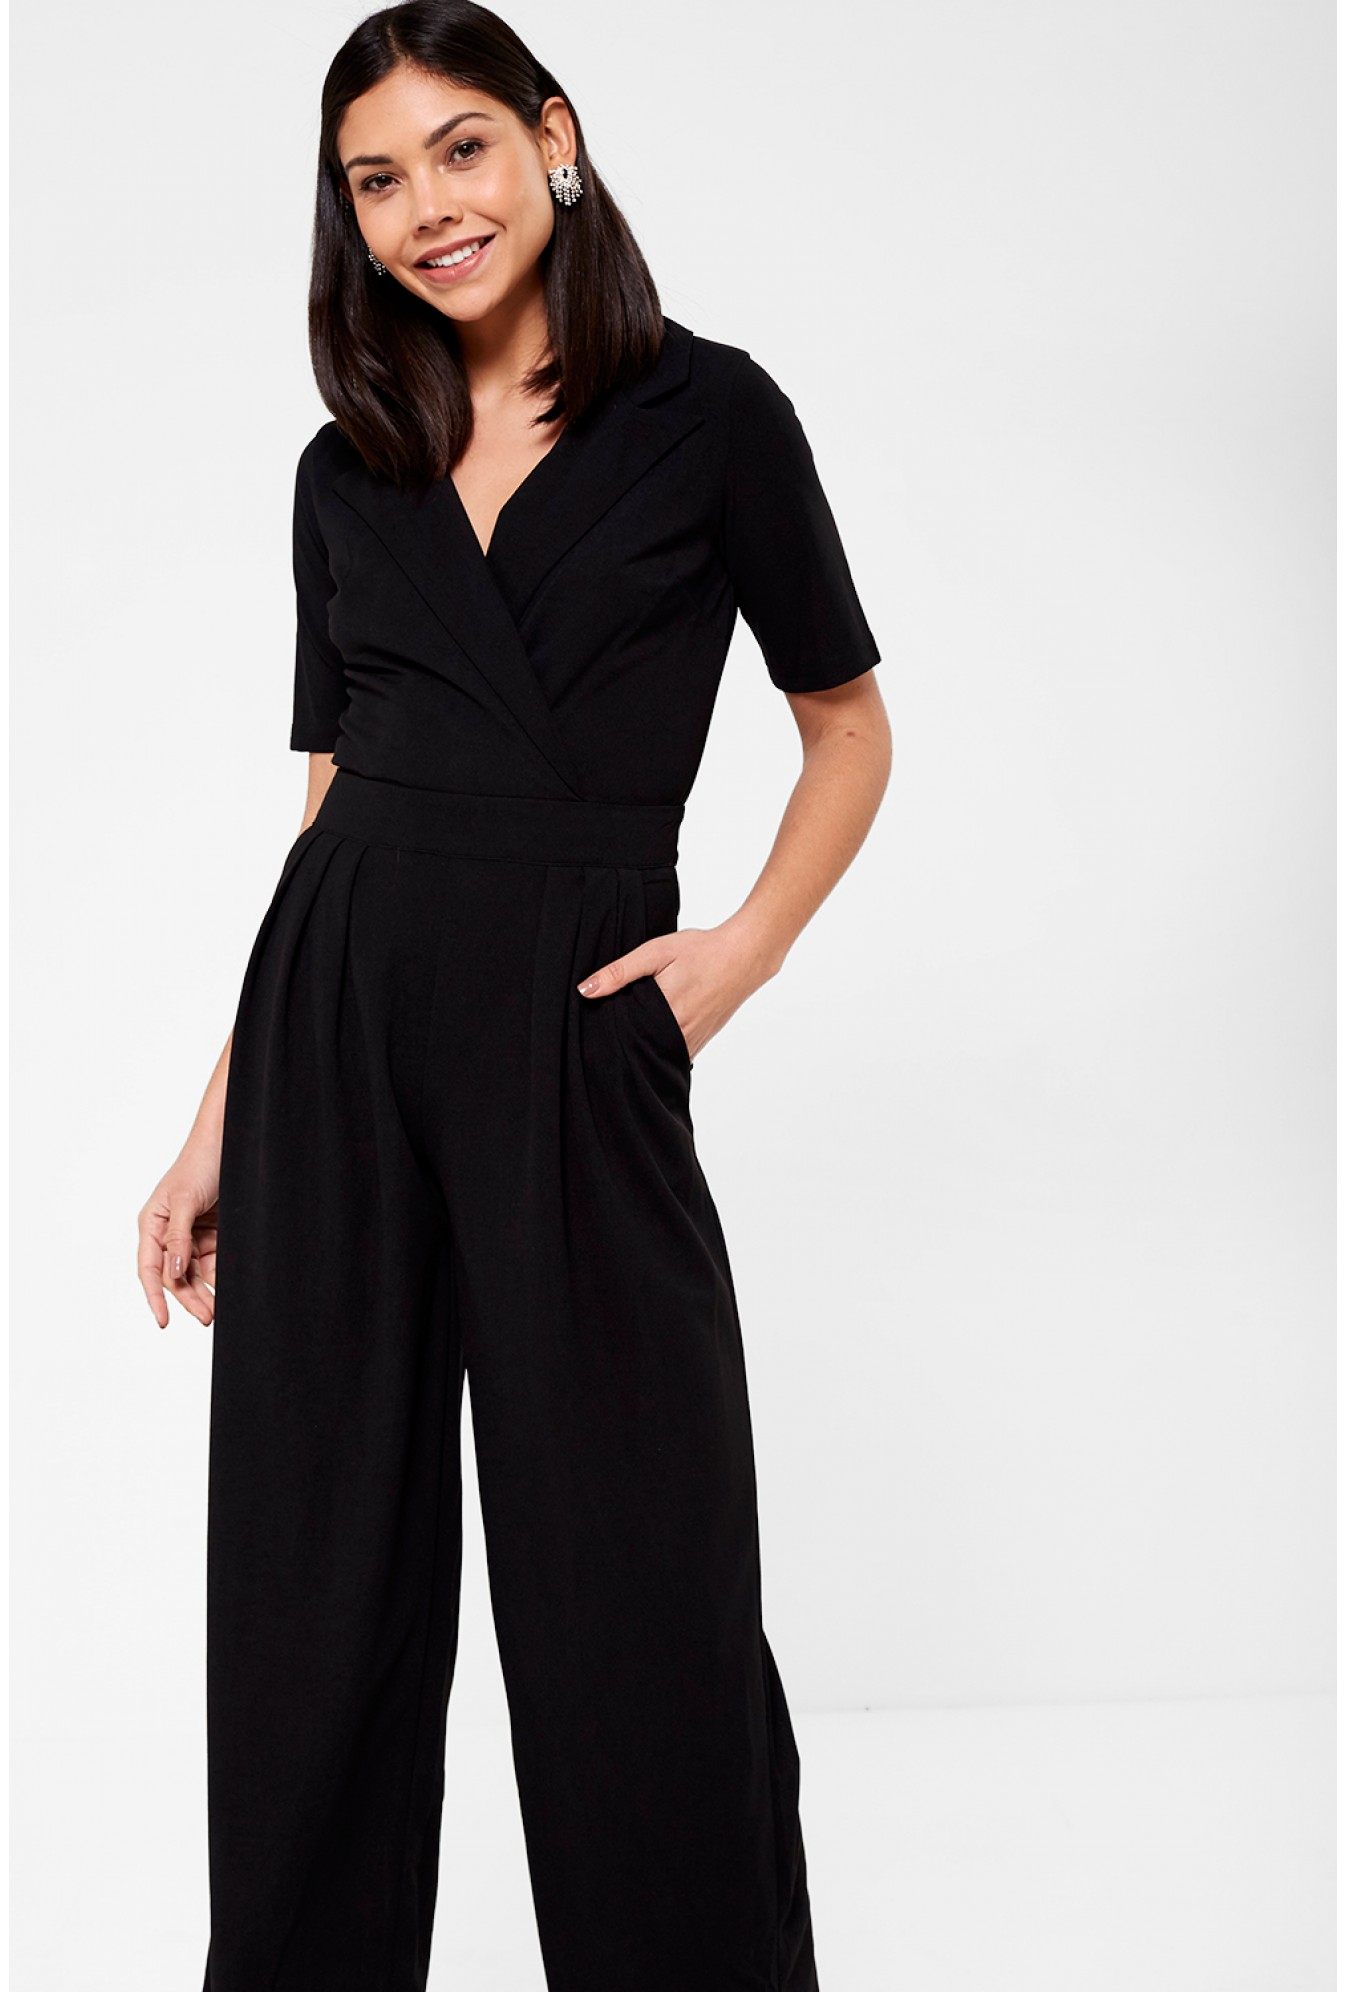 54114fdeb23 Marc Angelo Maura Crossover Jumpsuit in Black